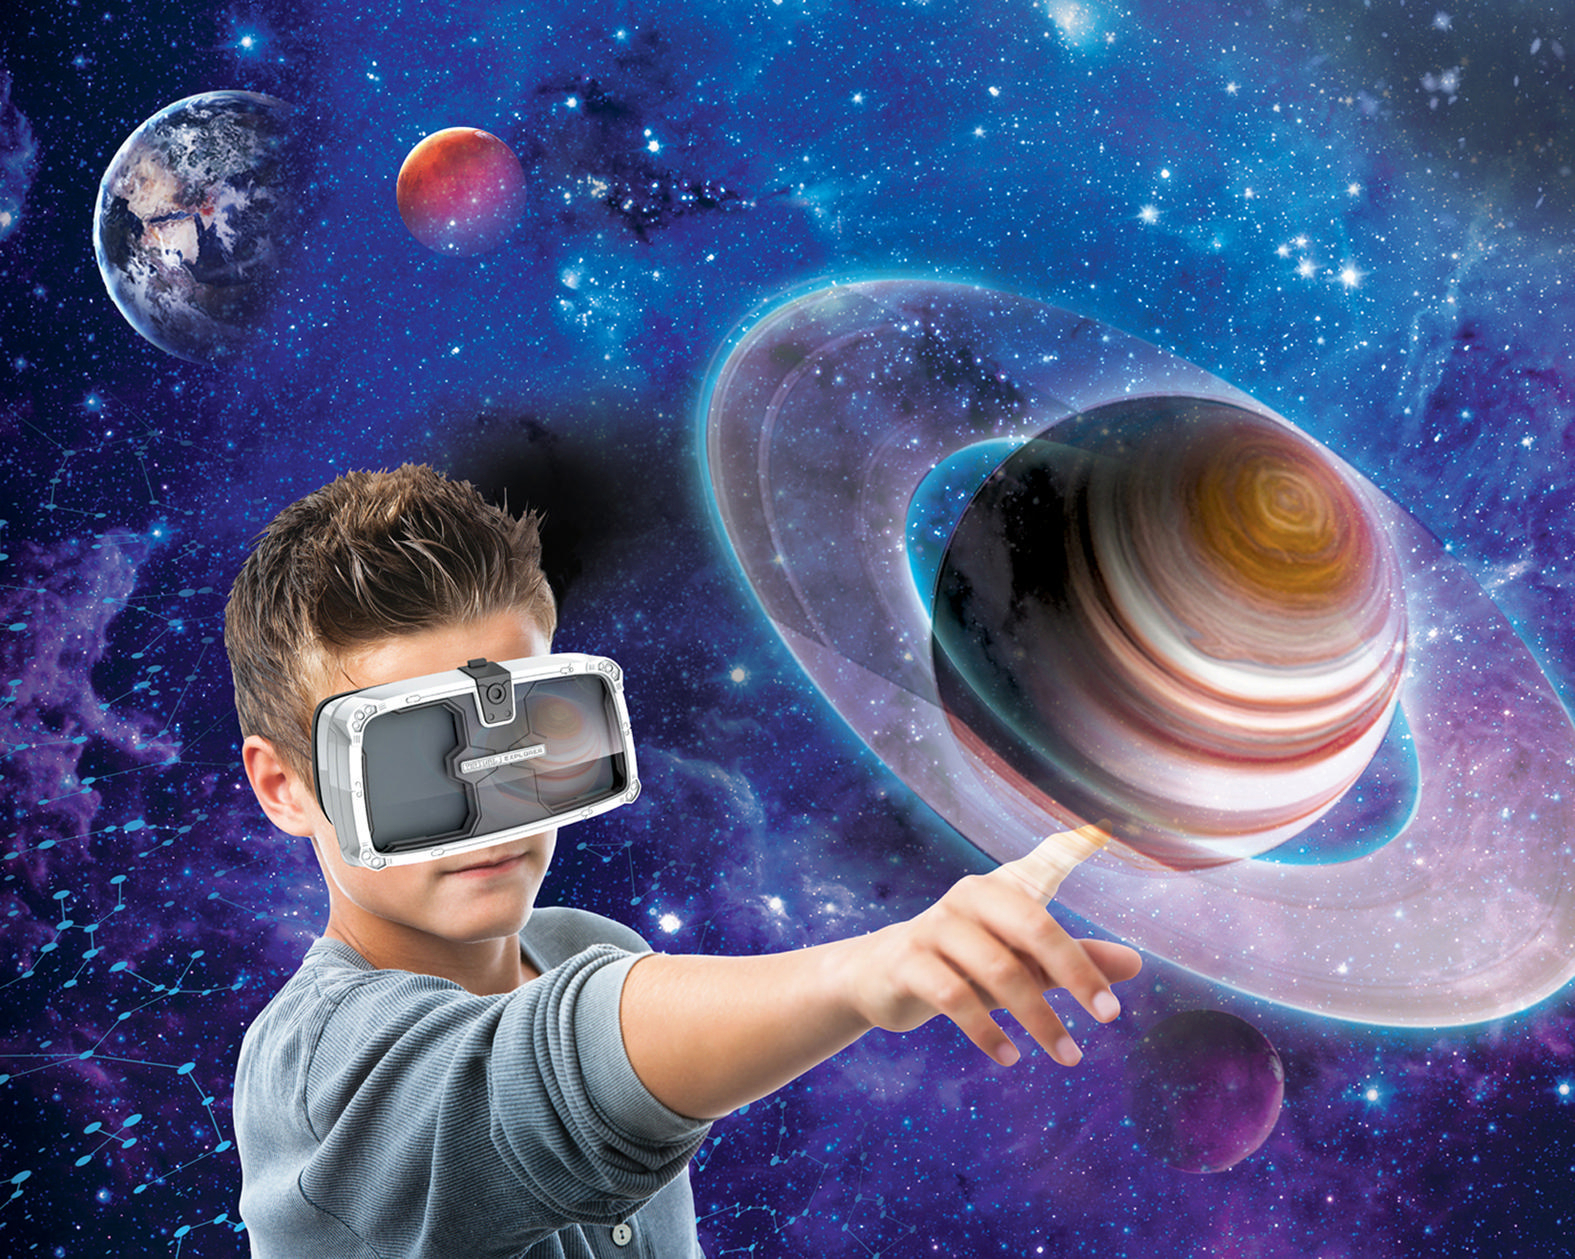 Covered with space explorations using virtual reality pics bingle pussie nude